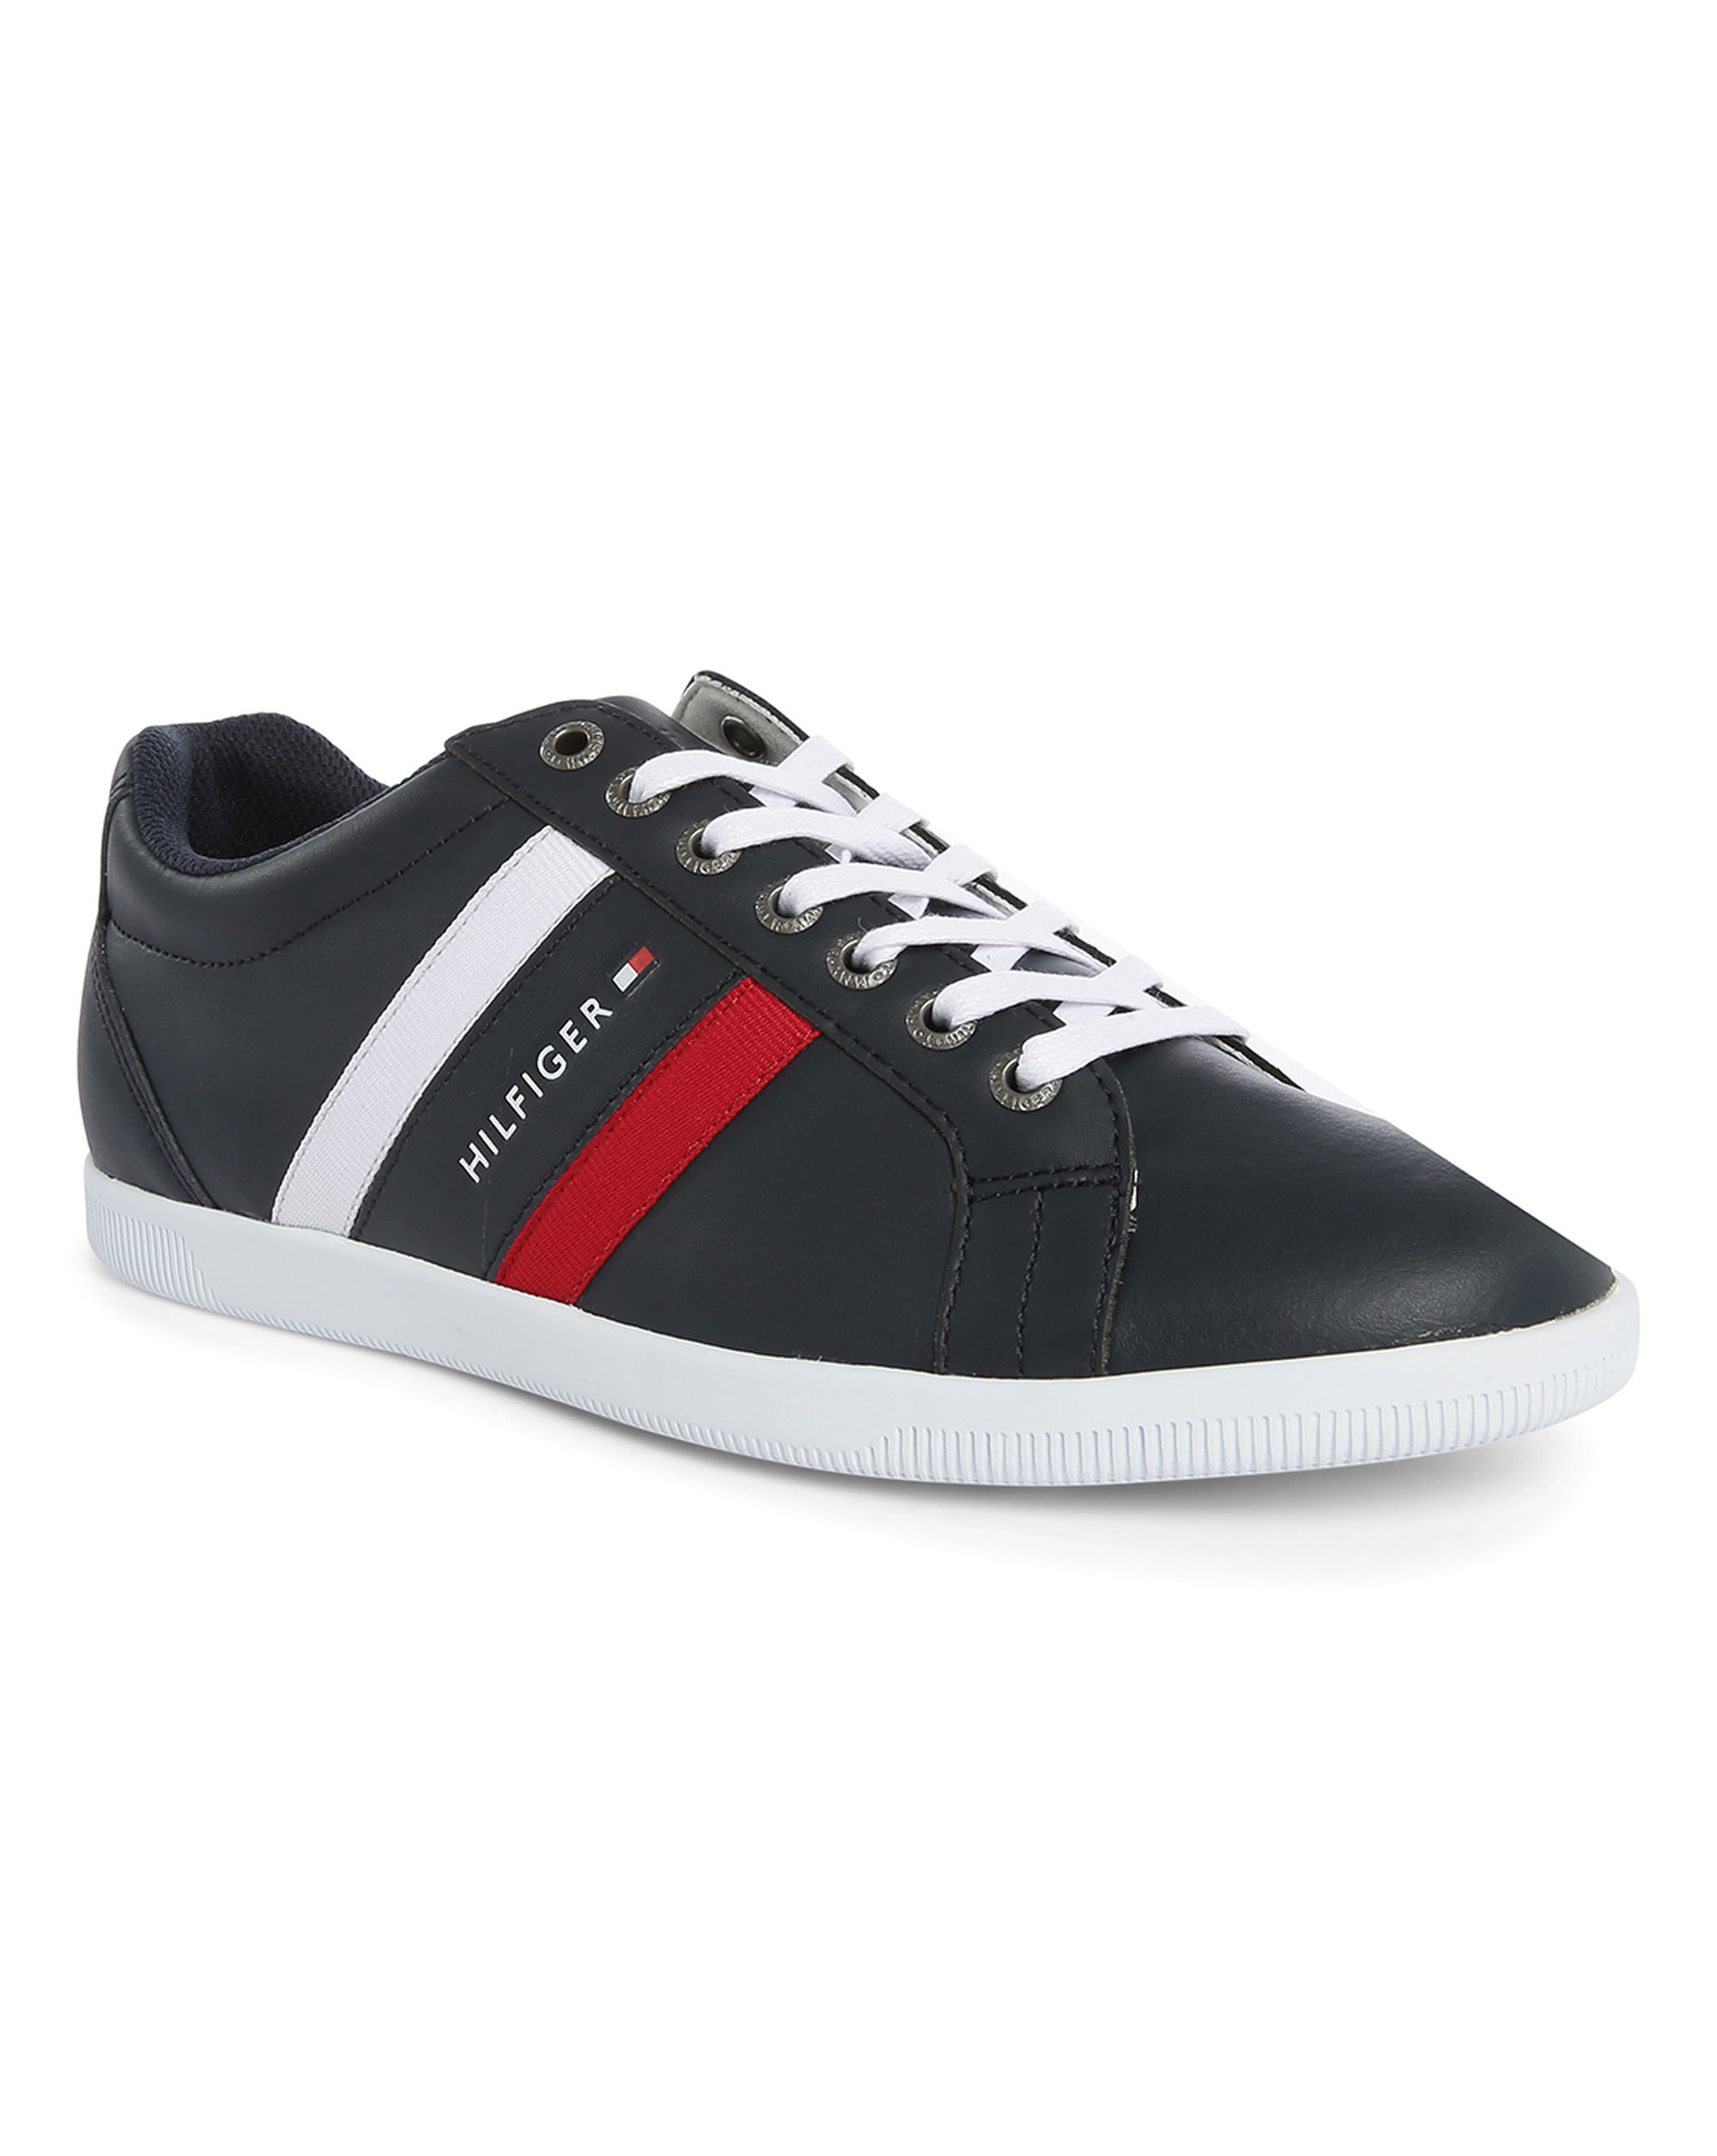 tommy hilfiger navy denzel leather sneakers in black for men blue lyst. Black Bedroom Furniture Sets. Home Design Ideas